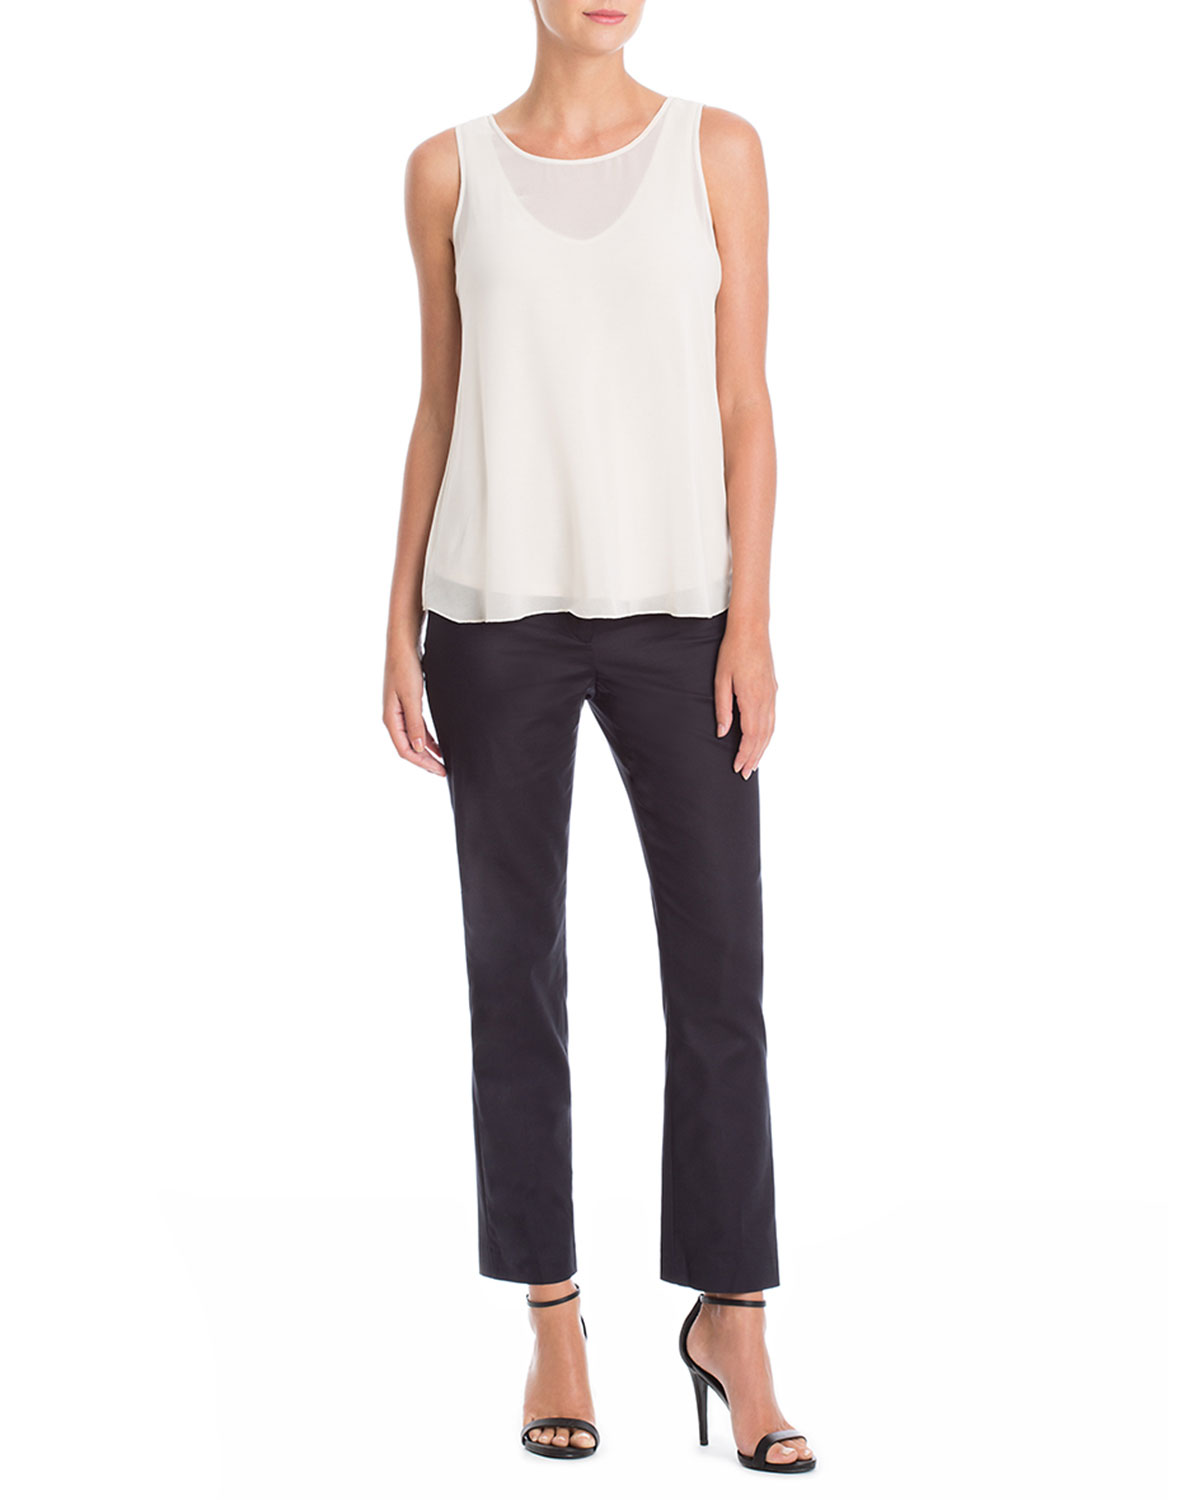 The Perfect Front-Zip Ankle Pants